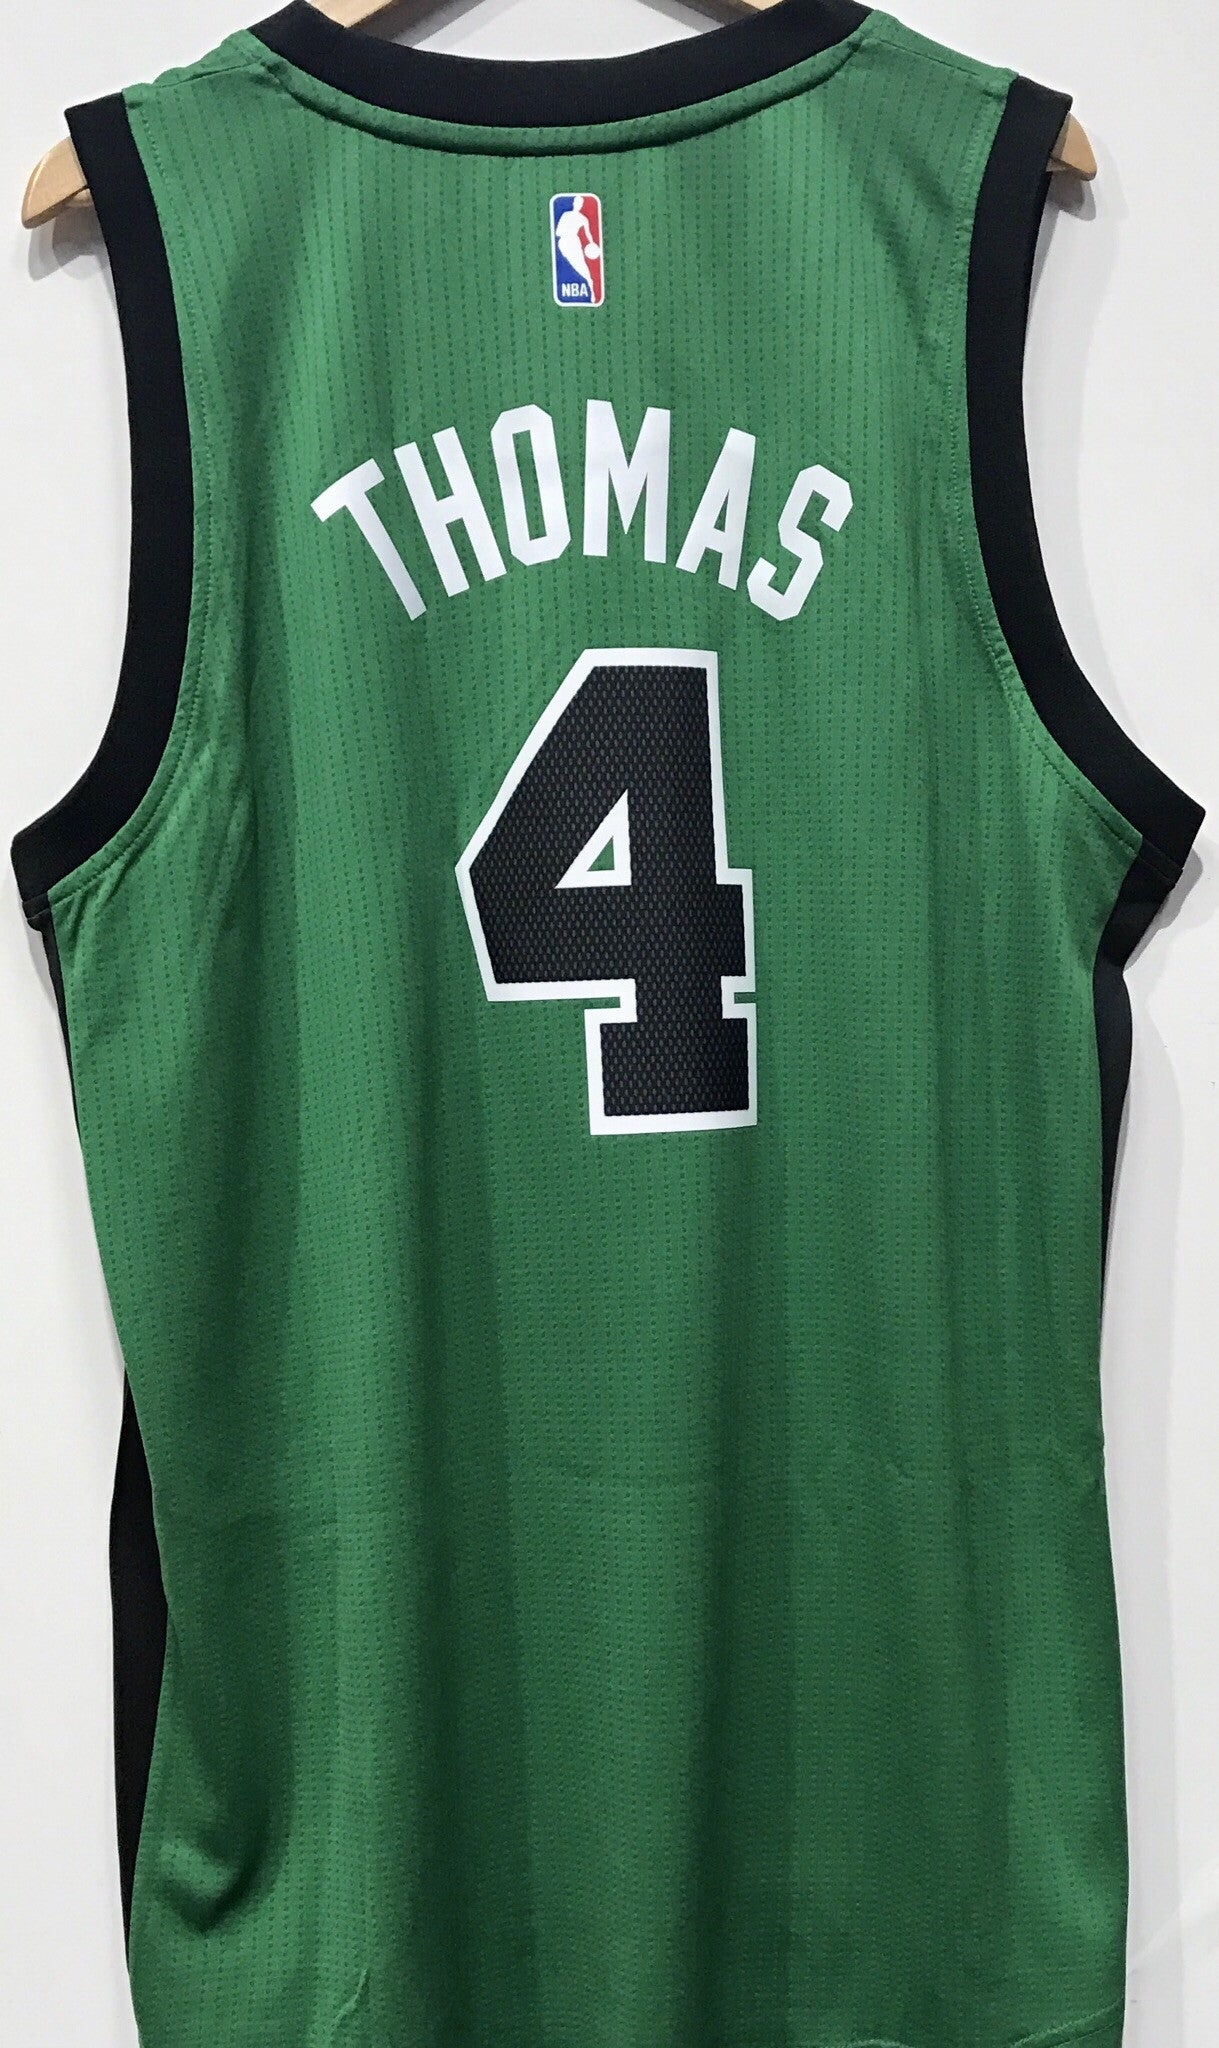 buy online a90b2 01f29 Adidas NBA Jersey Boston Celtics Isaiah THOMAS #4 Green